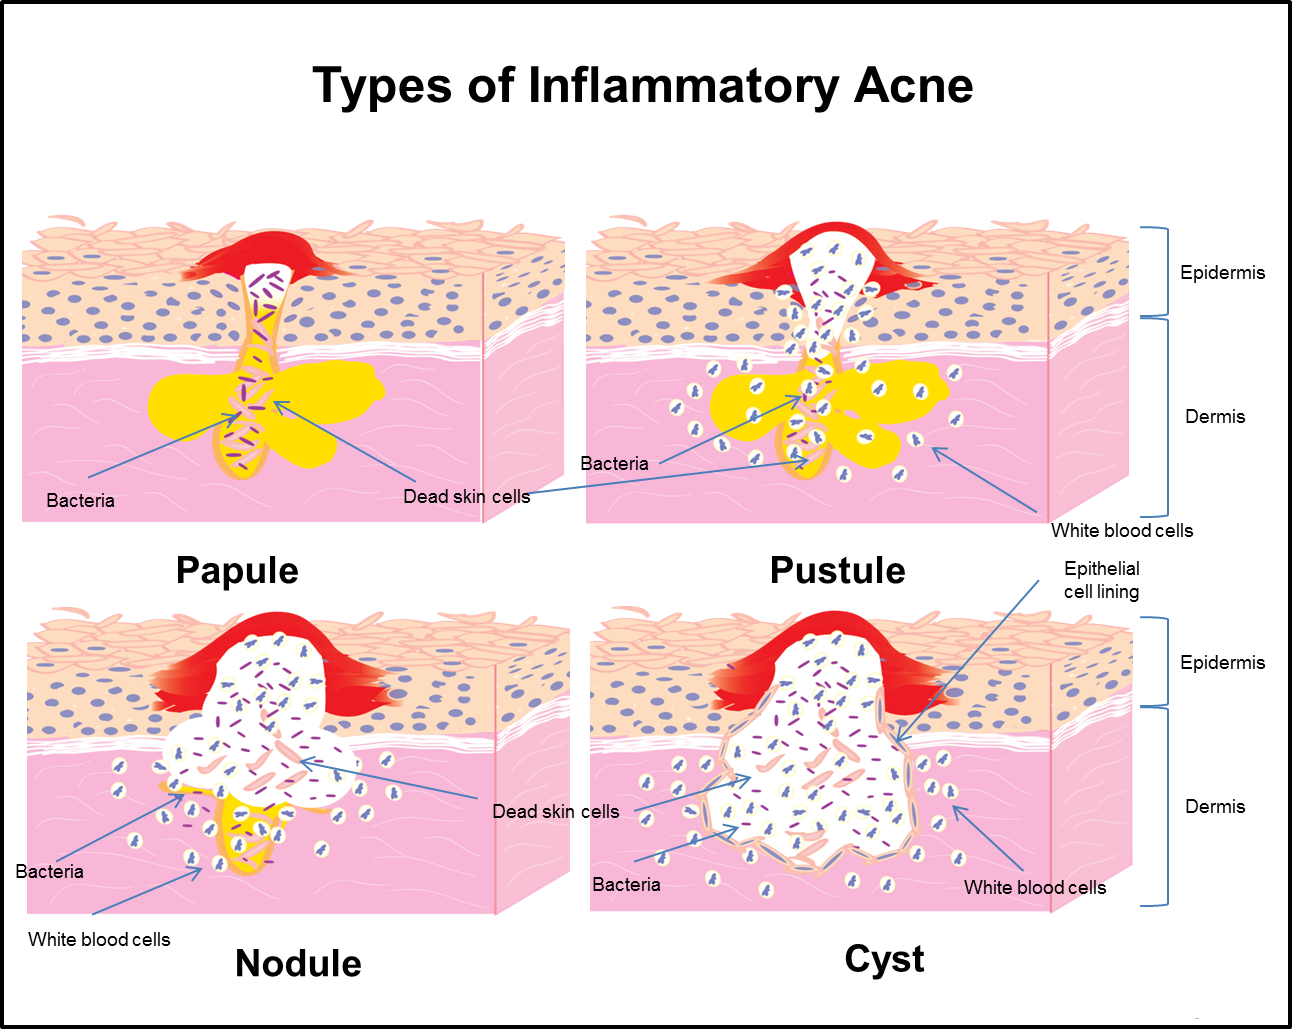 an examination of the skin disease acne vulgaris Backgroundin westernized societies, acne vulgaris is a nearly universal skin disease afflicting 79% to 95% of the adolescent population in men and women older.